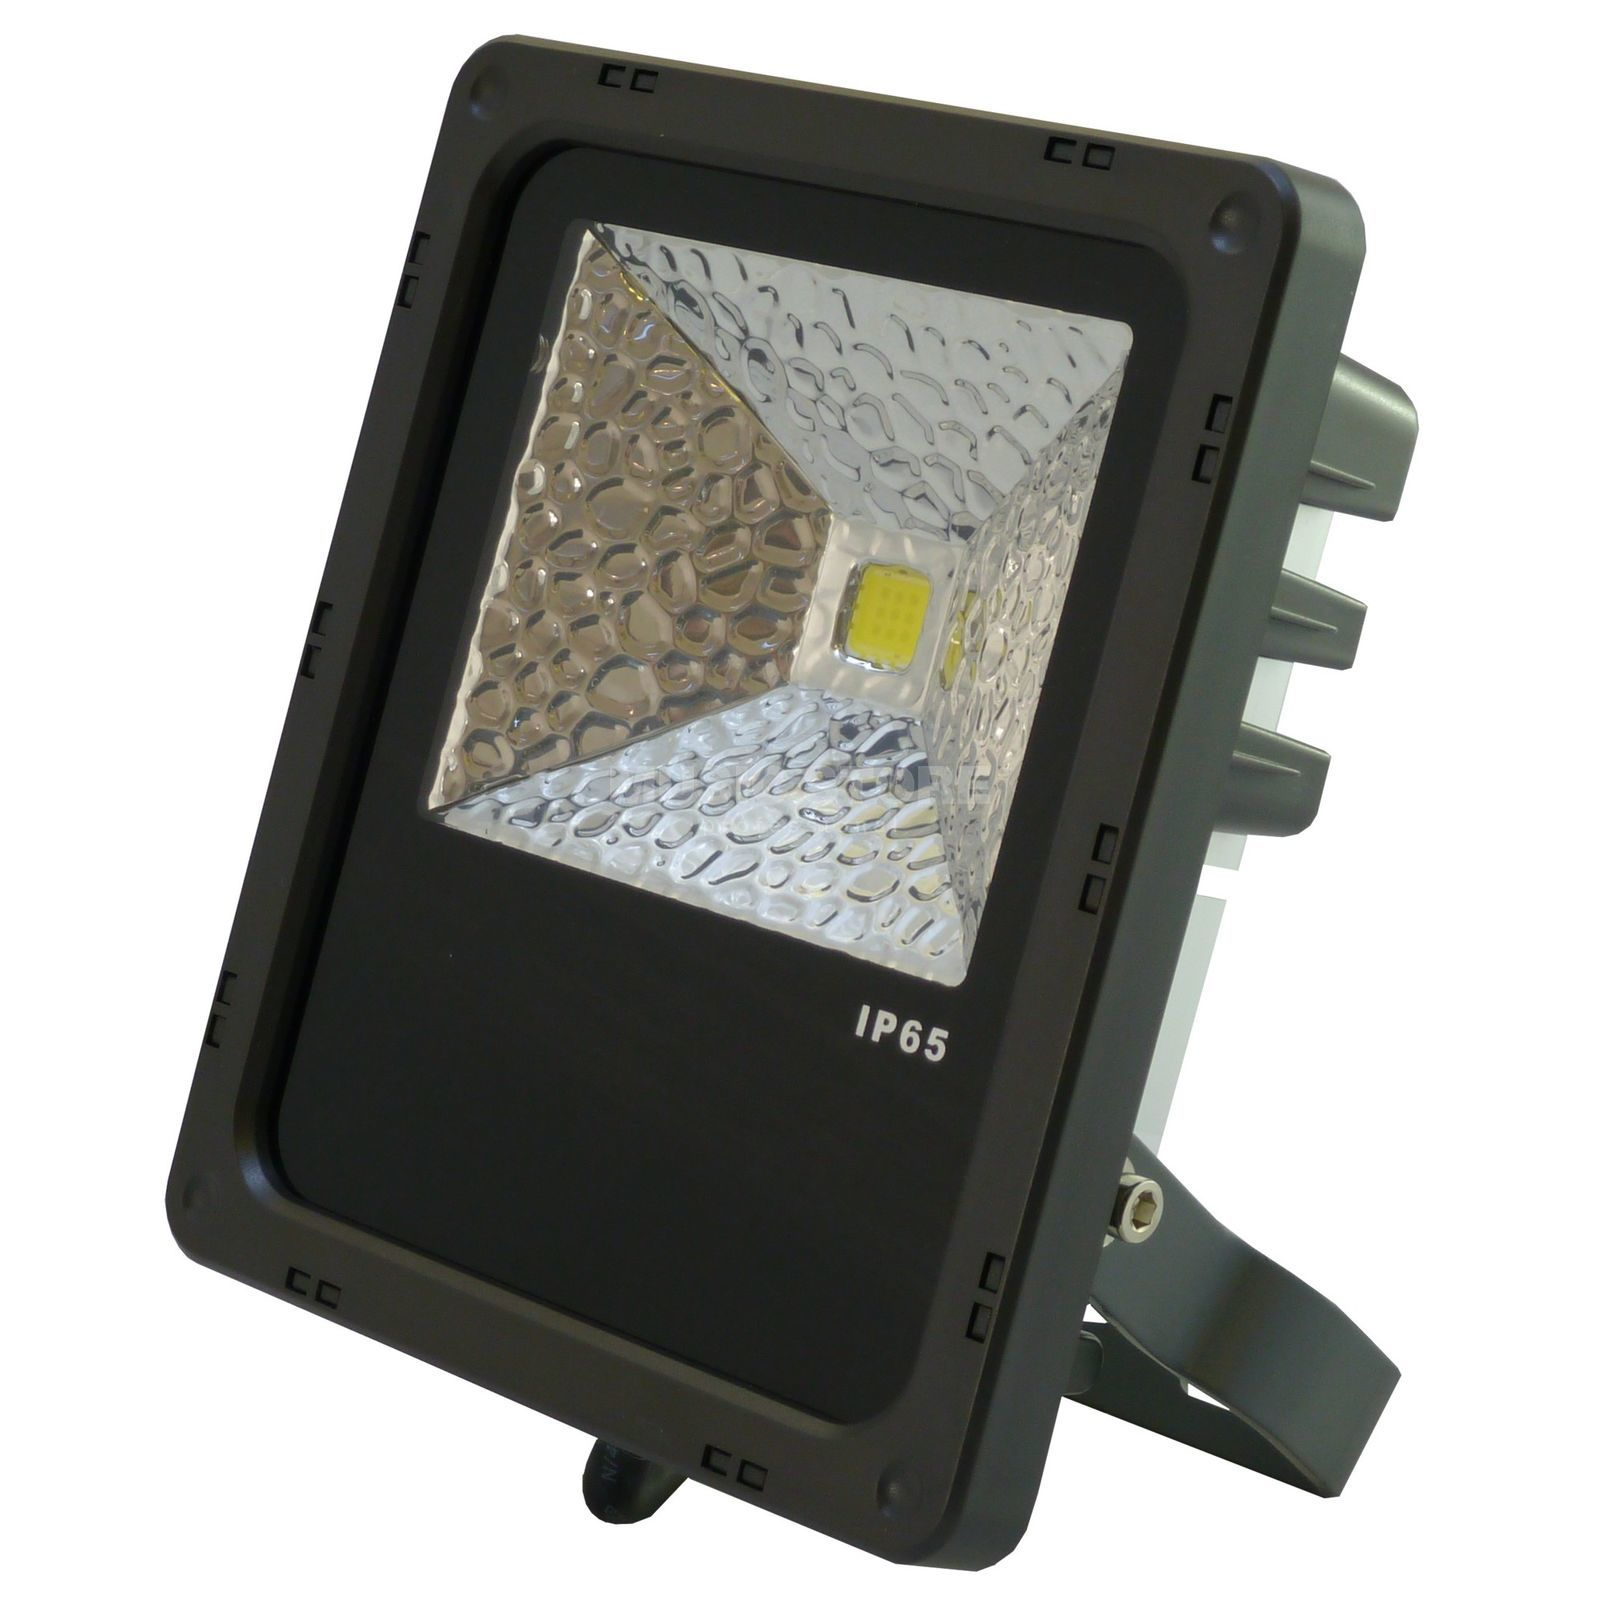 PTL LED Flood PRO 10W kalt weiss IP 65, 10W COB LED, 120° Produktbild